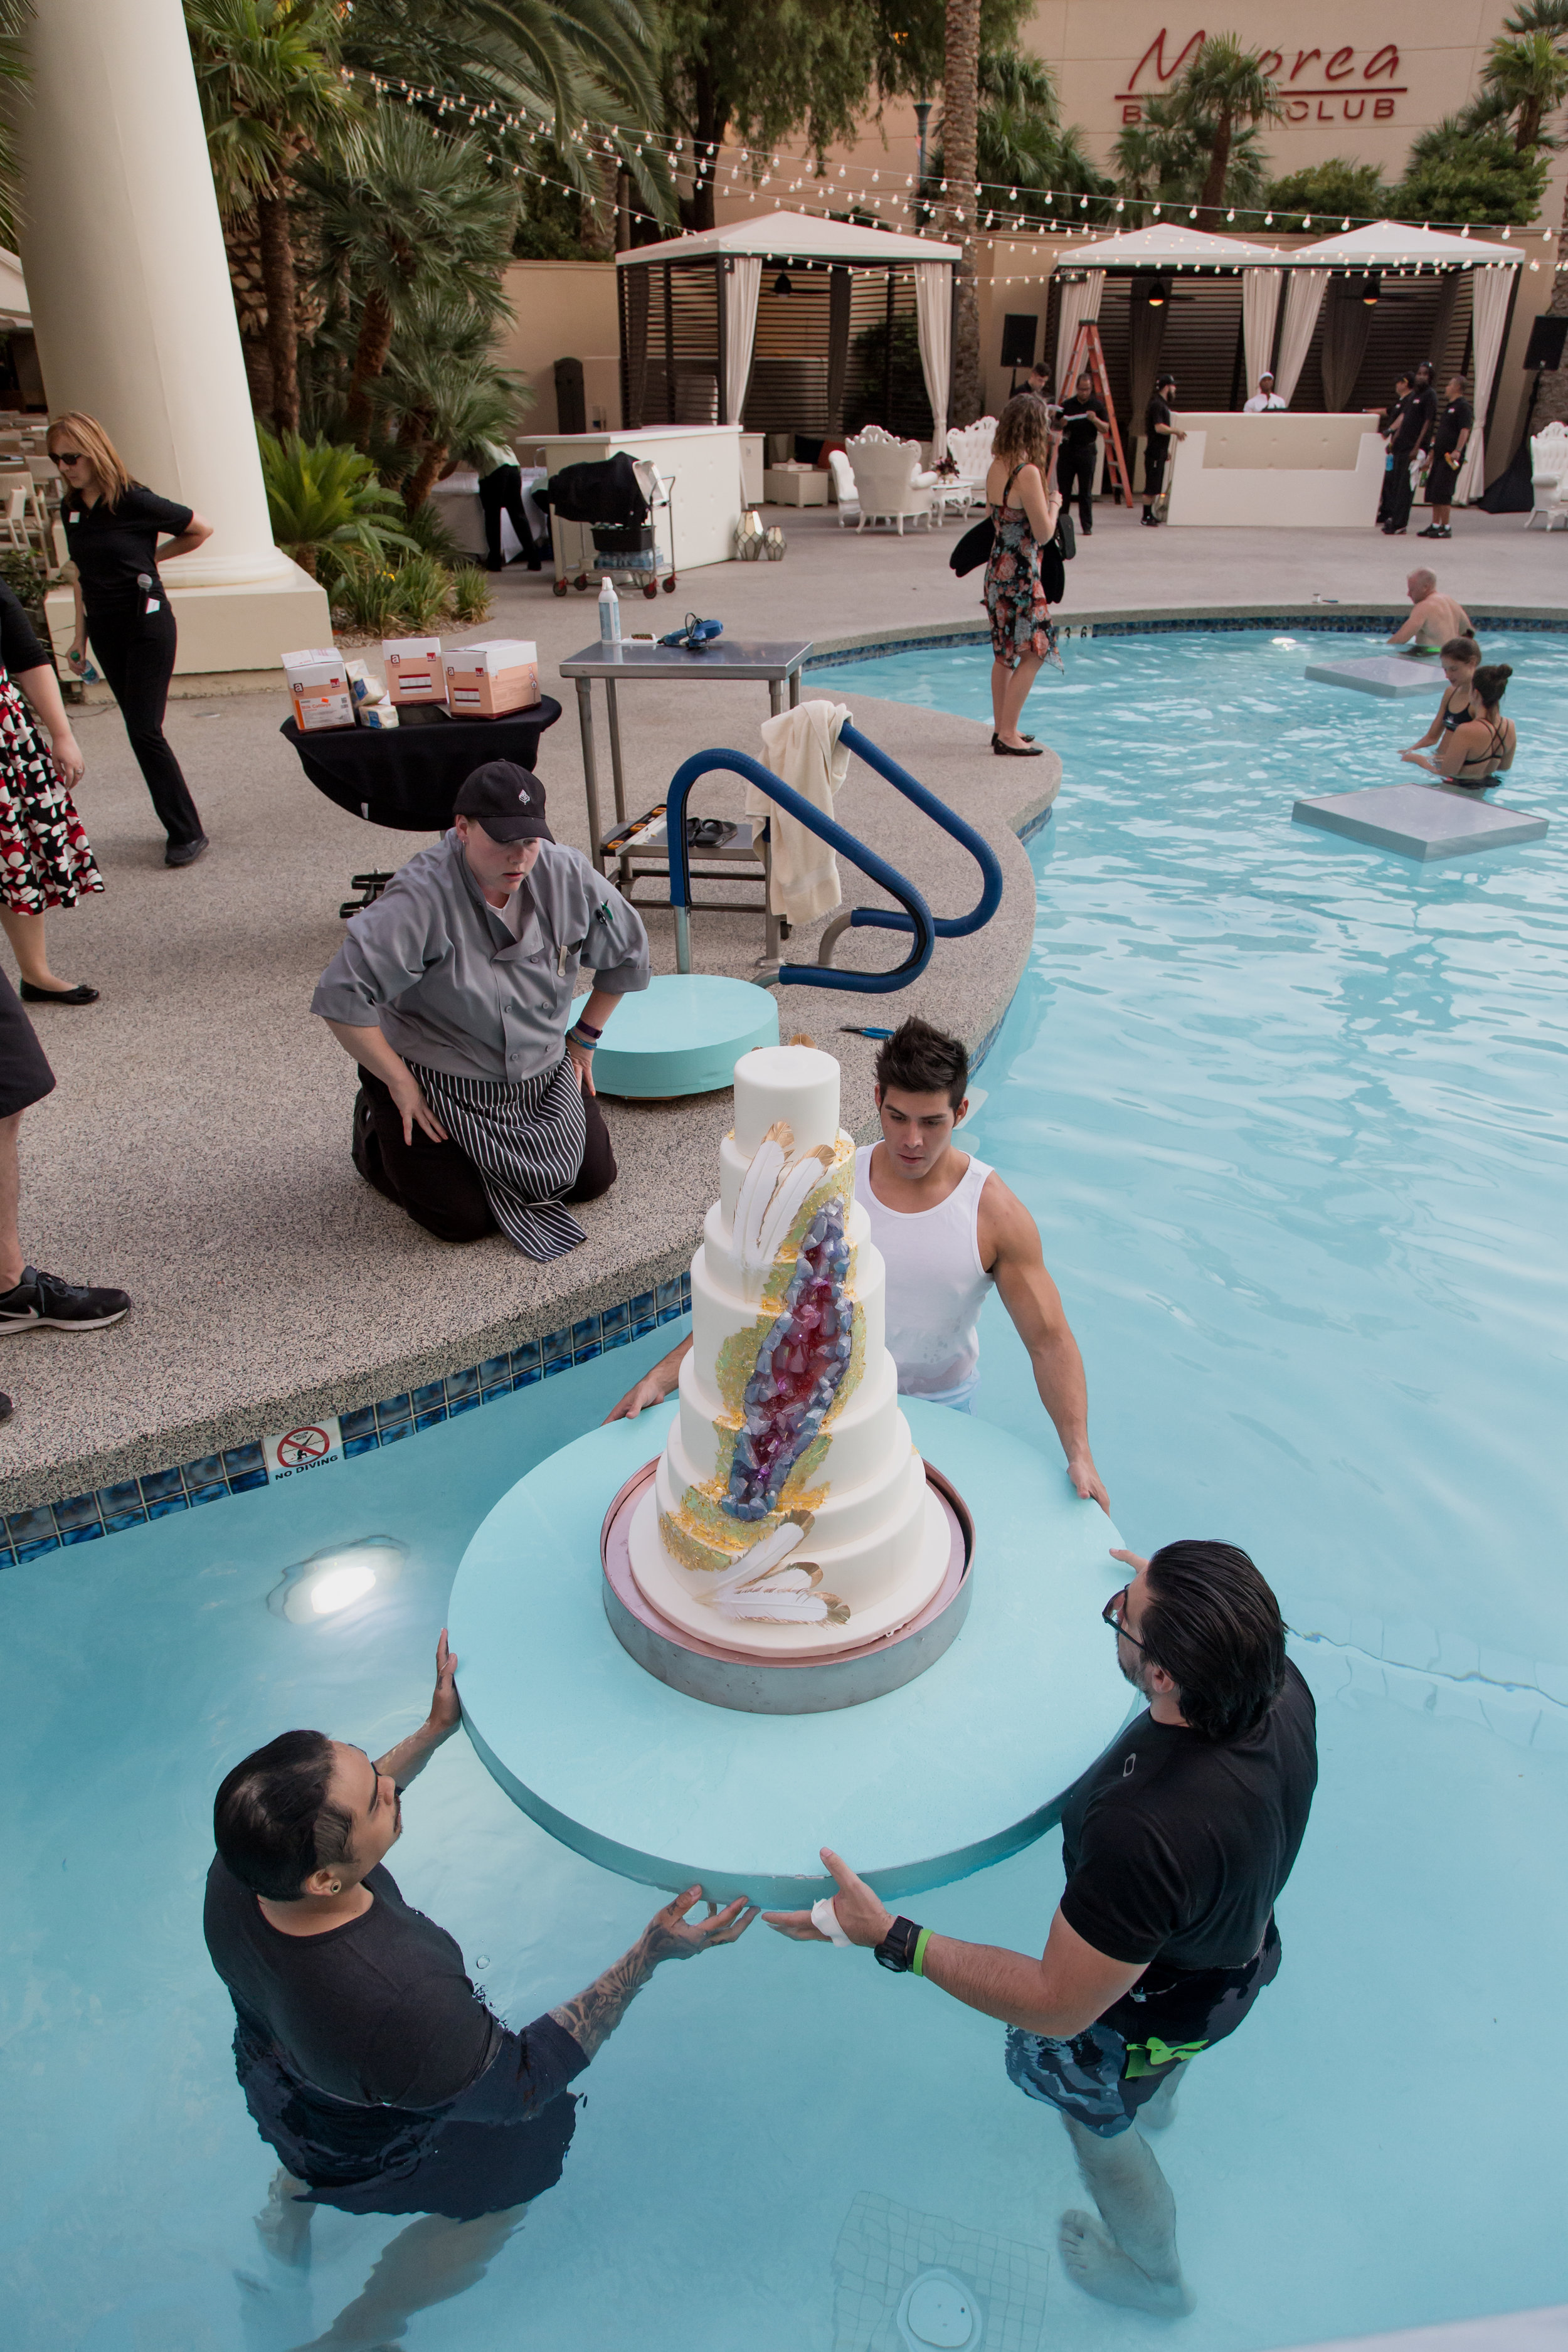 Behind the Scenes - How do you float a wedding cake?Destination Wedding Planner  Andrea Eppolito ·Photos by  Adam Frazier Photography ·Floral and Decor by  Destinations by Design · Lighting by  LED Unplugged ·Venue · Invitations  Ceci New York  · Menus by  Alligator Soup